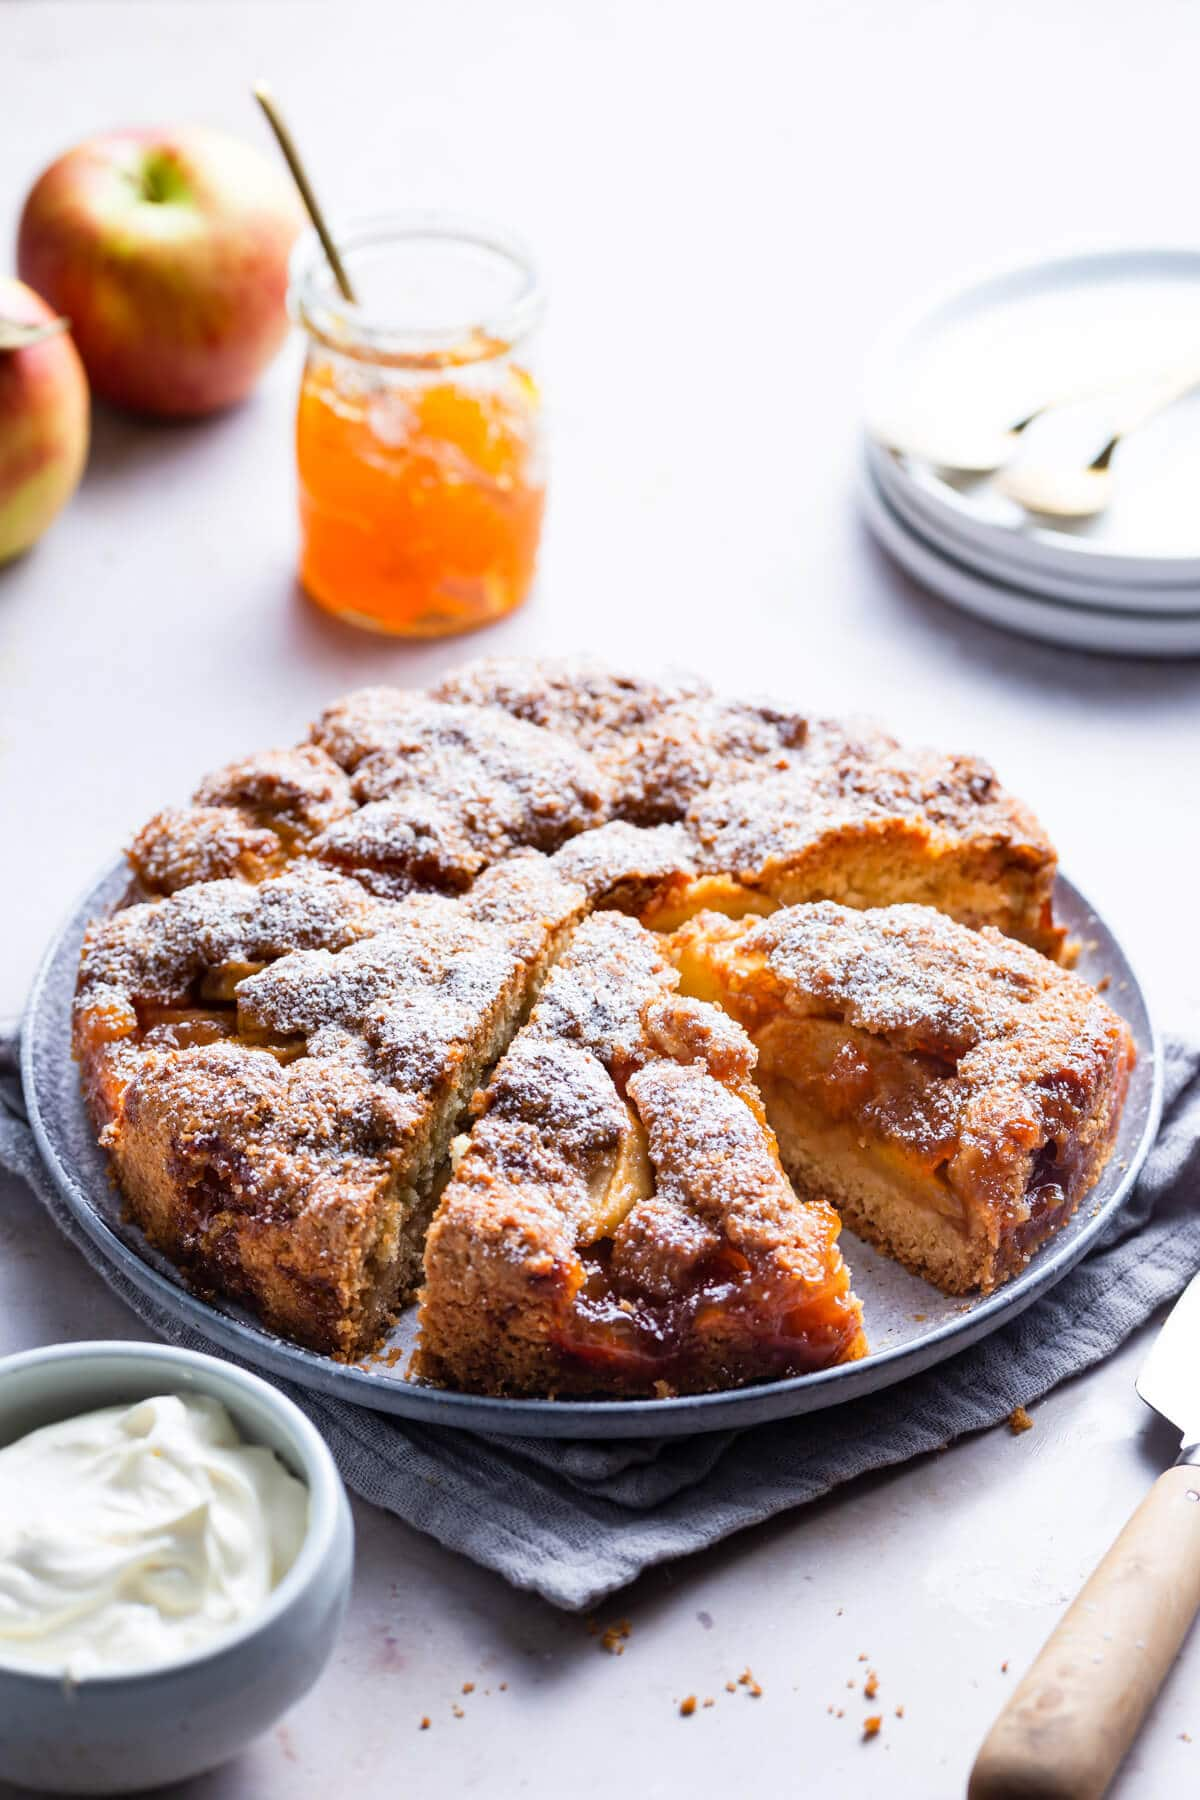 45 degree angle view of an apple cake on a round plate